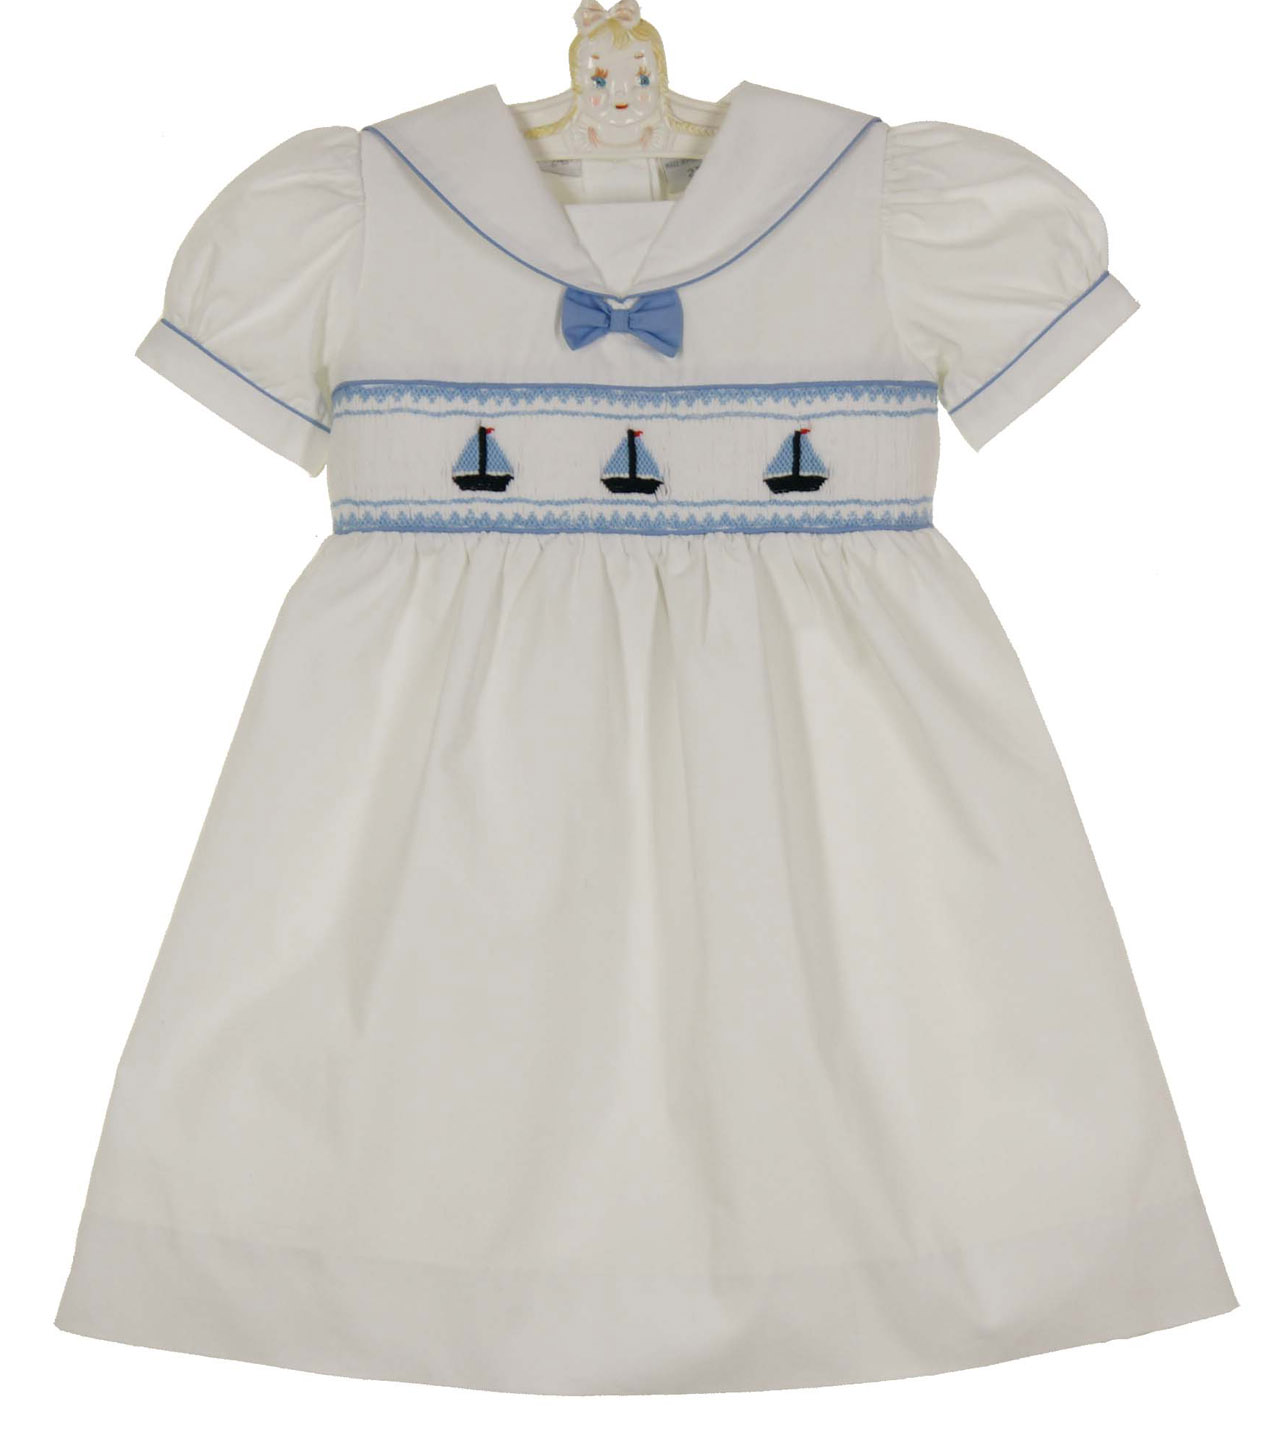 28c5b1ce9 Carriage Boutique white smocked toddler dress and bloomers with boat ...